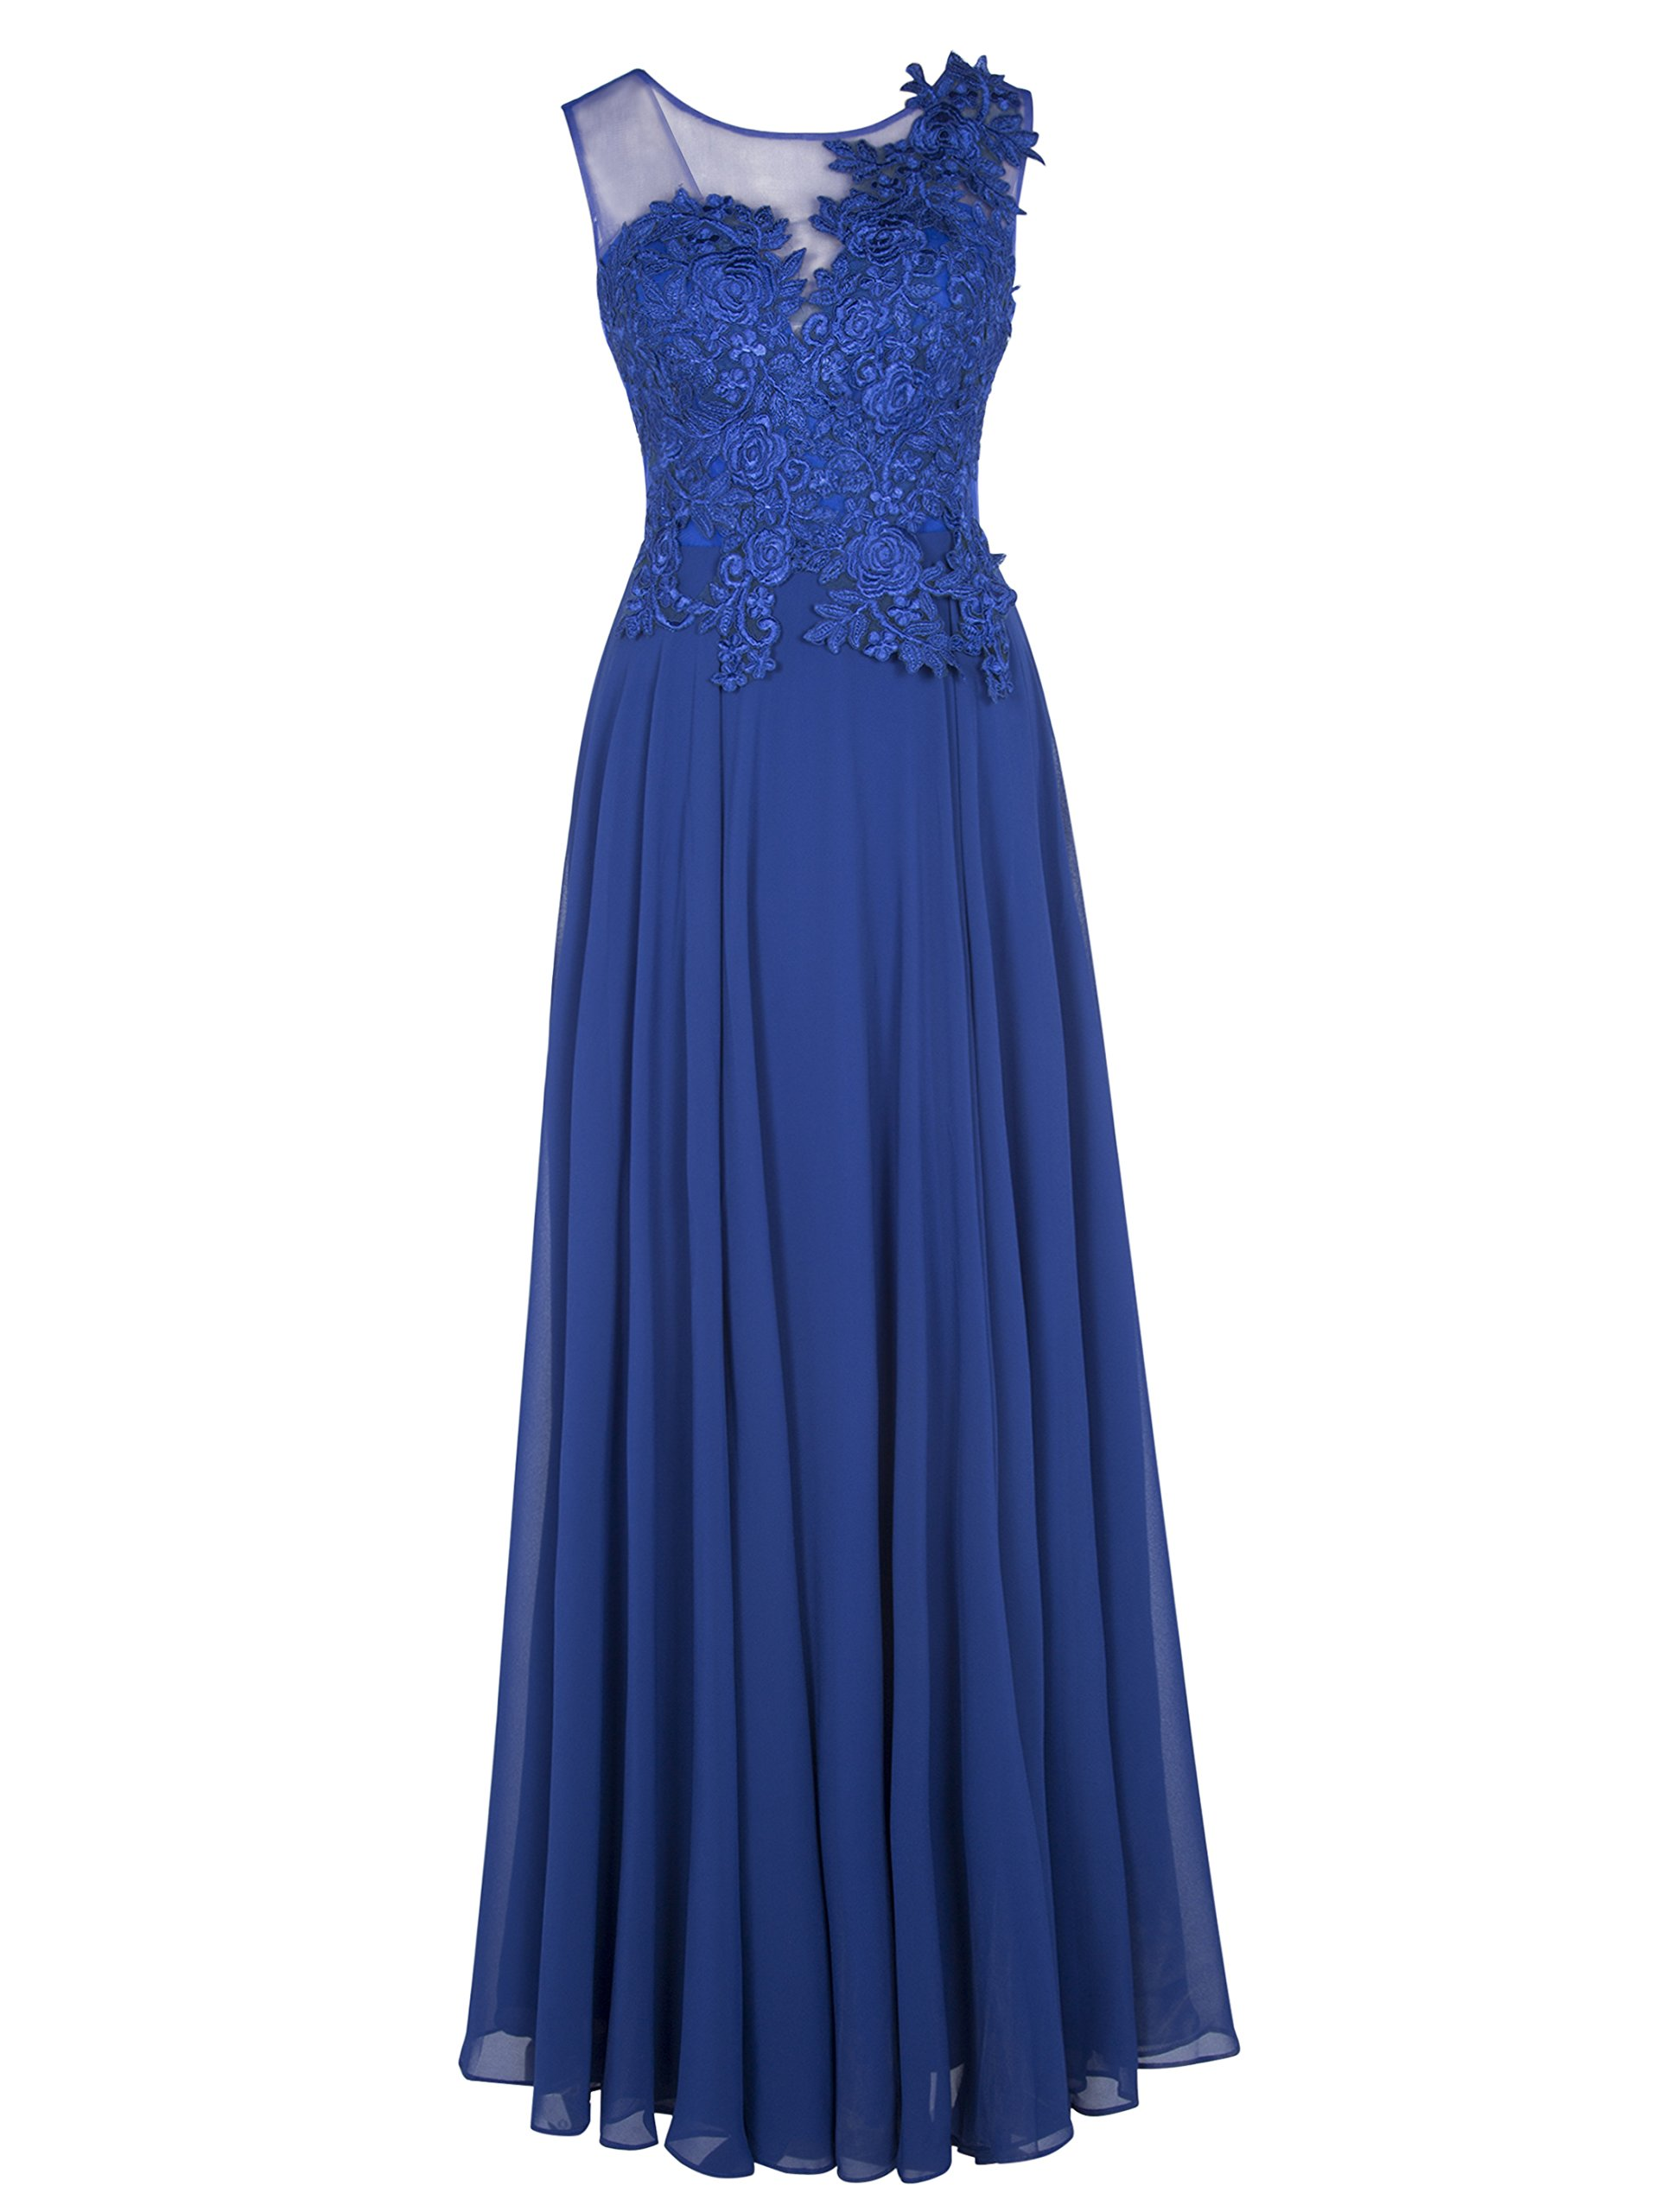 Tanpell Womens Concise Sheer Neckline Appliques Lace-up Prom Evening Dress Royal Blue US10